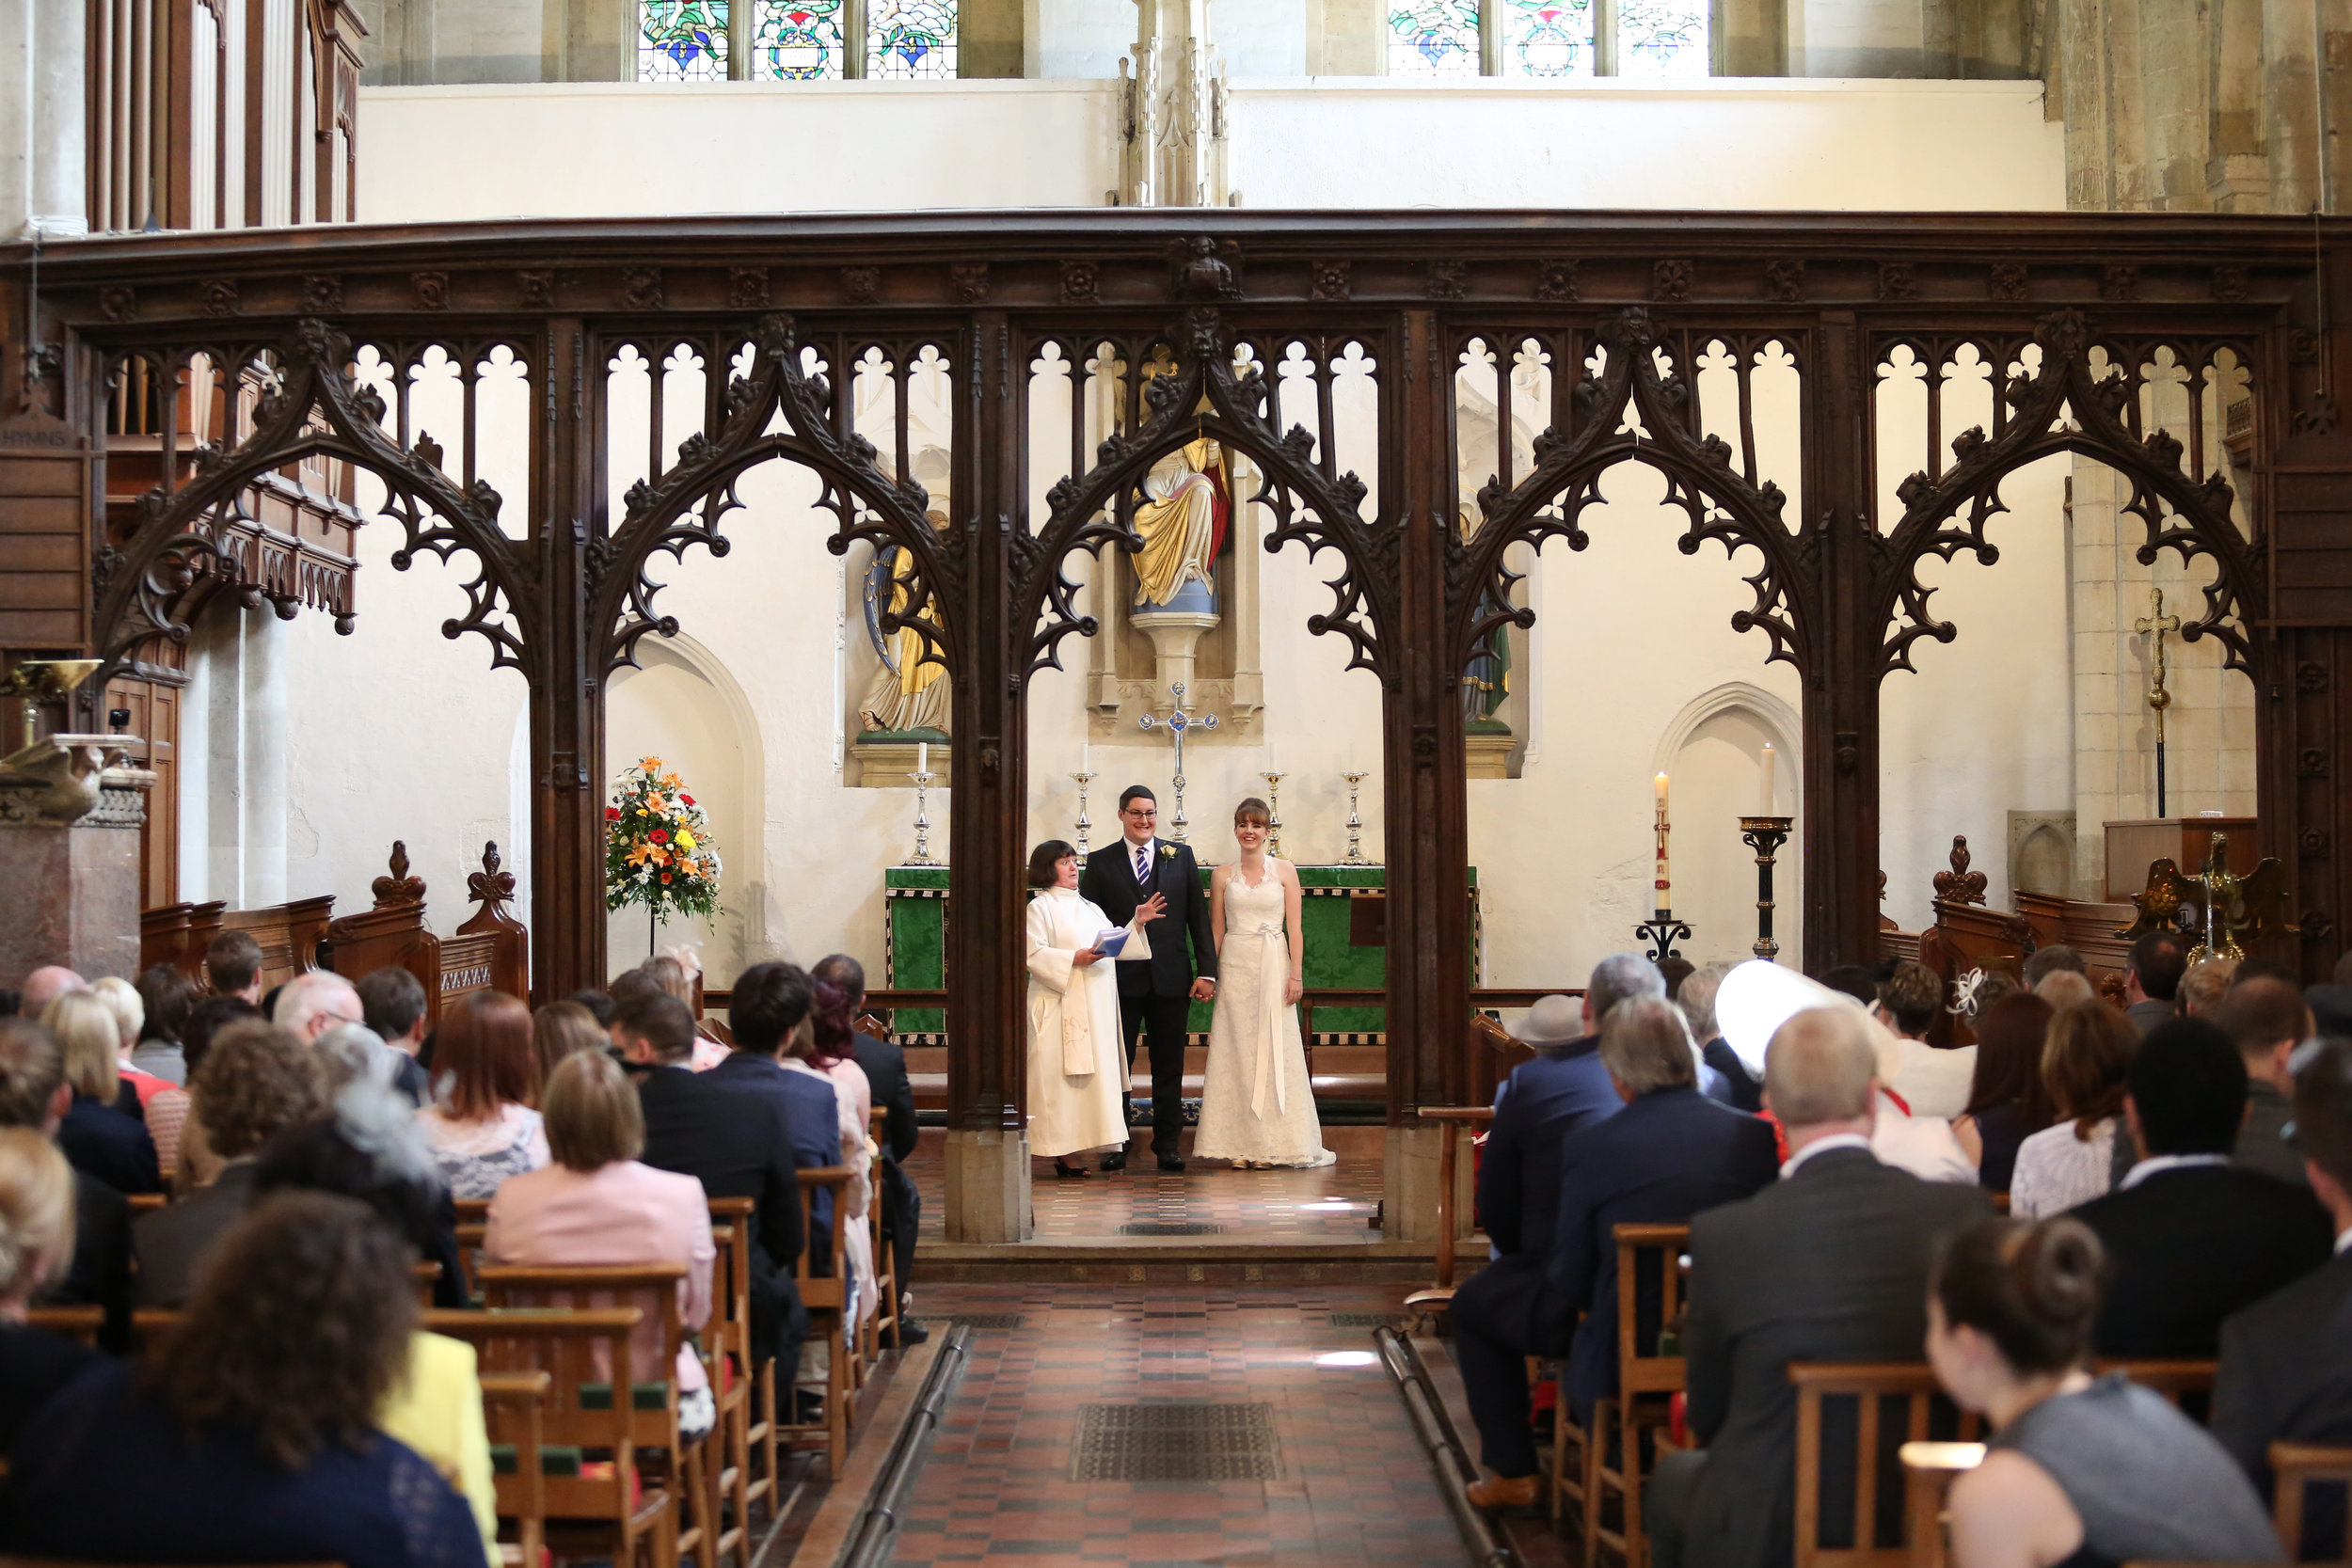 JELLYFISH WEDDING PHOTOGRAPHY THE PRIORY ST PETER CHURCH DUNSTABLE (22).jpg